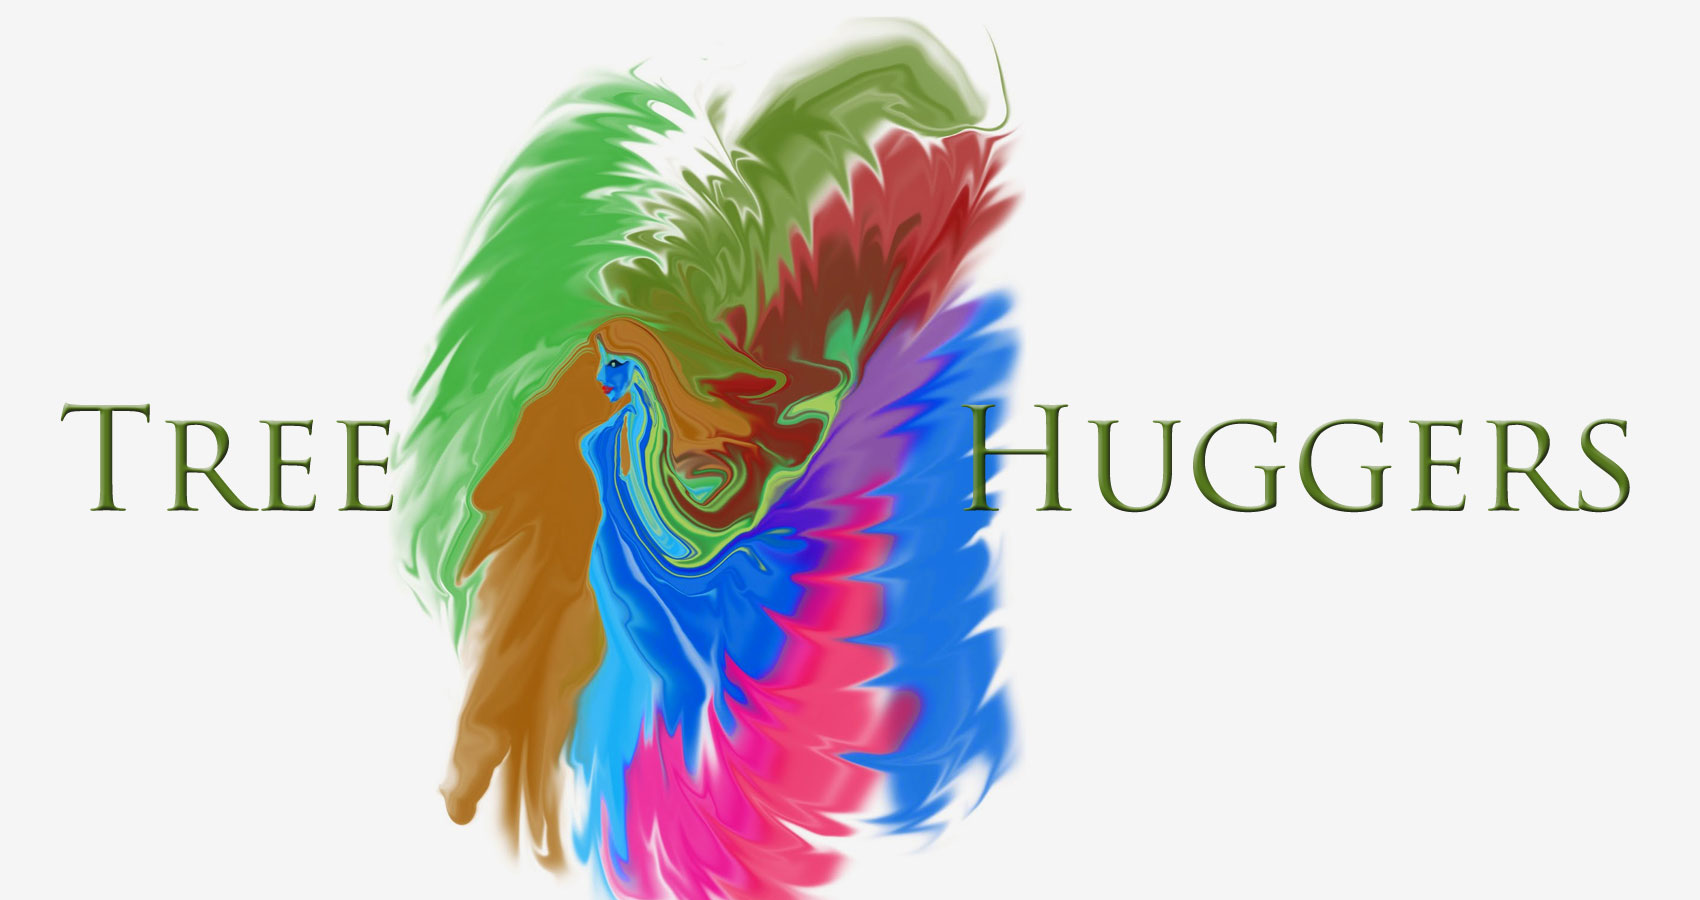 Tree Huggers by Rakind Kaur at Spillwords.com